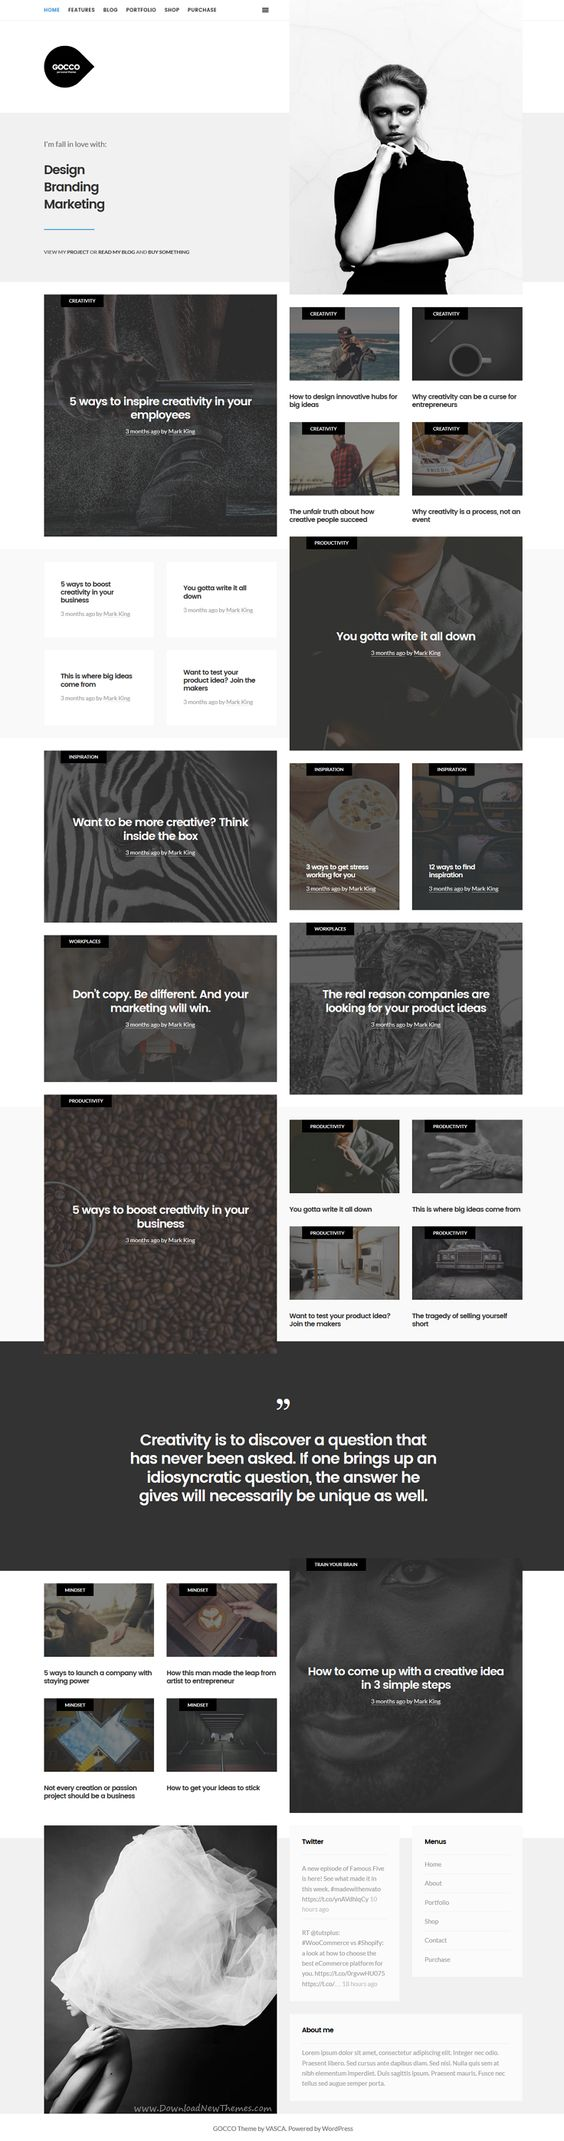 Gocco is simple and modern responsive #WordPress theme for personal #blog, #portfolio and #eCommerce website download now➝ https://themeforest.net/item/gocco-portfolio-wordpress-theme/16227911?ref=Datasata